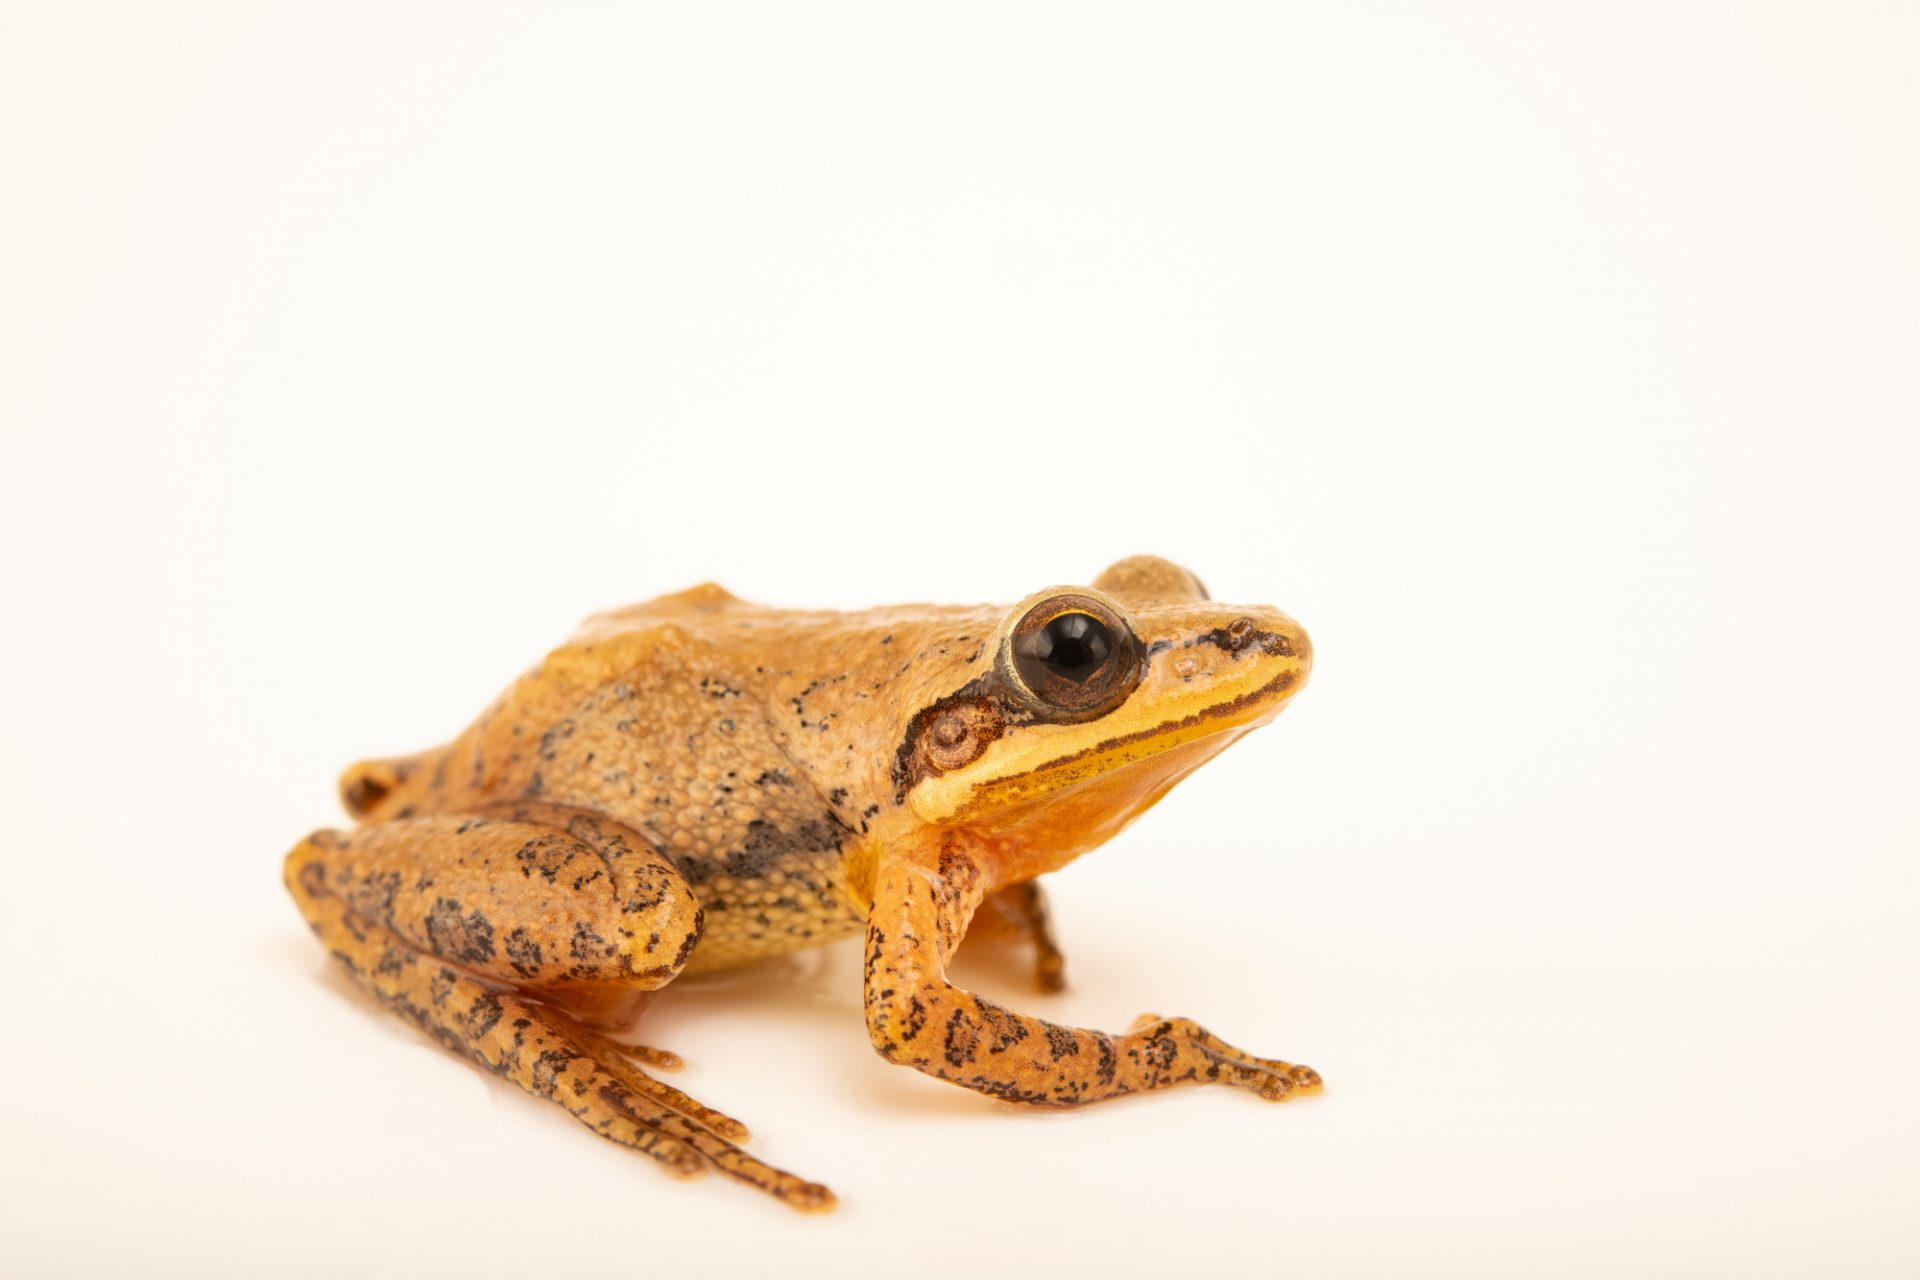 Photo: An upland chorus frog (Pseudacris feriarum) at the Auburn University Natural History Museum.